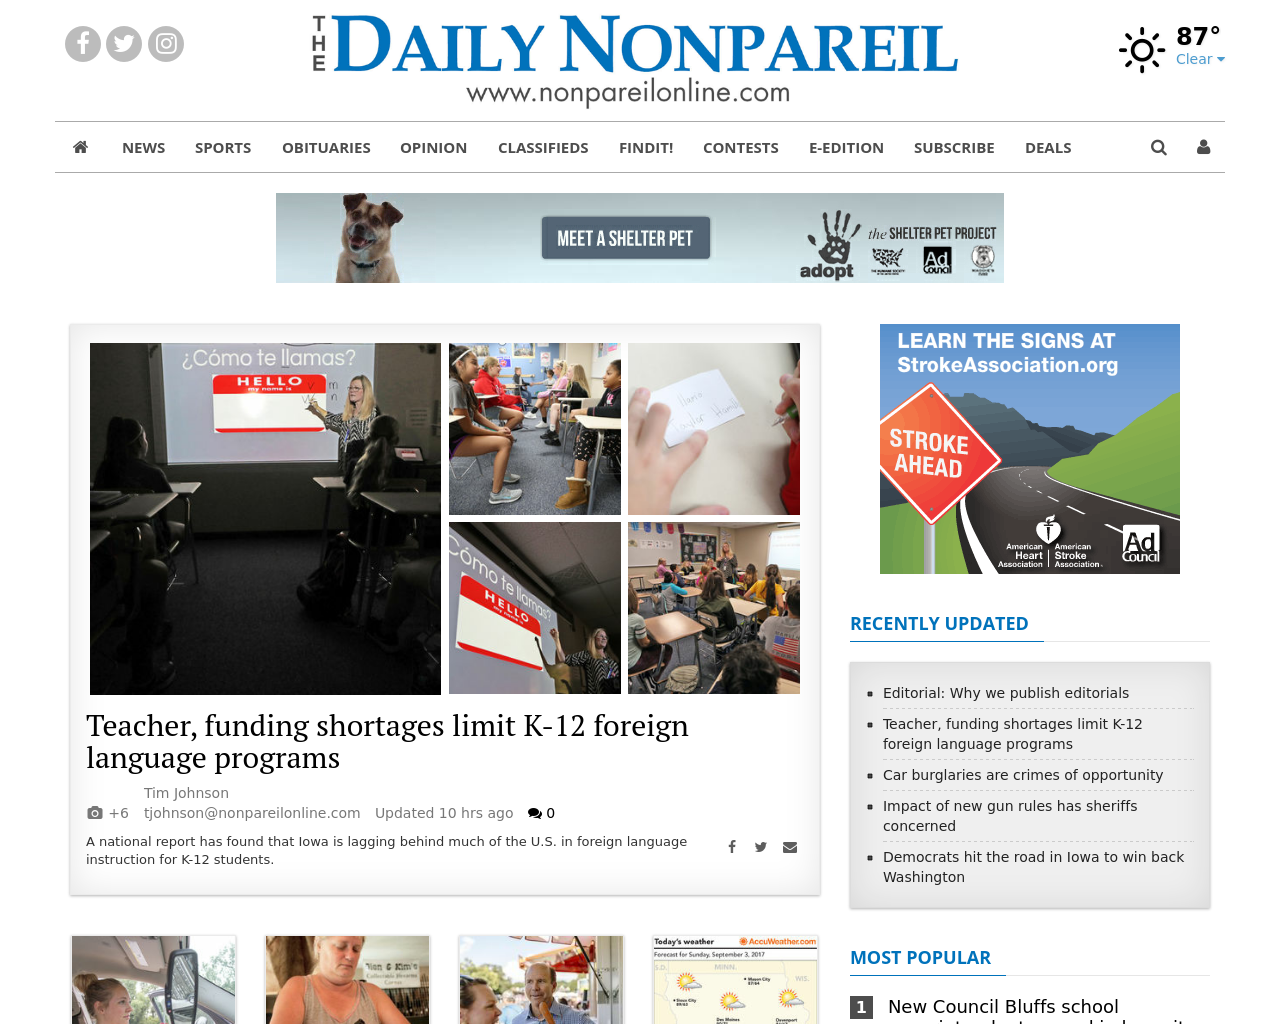 THE-DAILY-NONPAREIL-Advertising-Reviews-Pricing